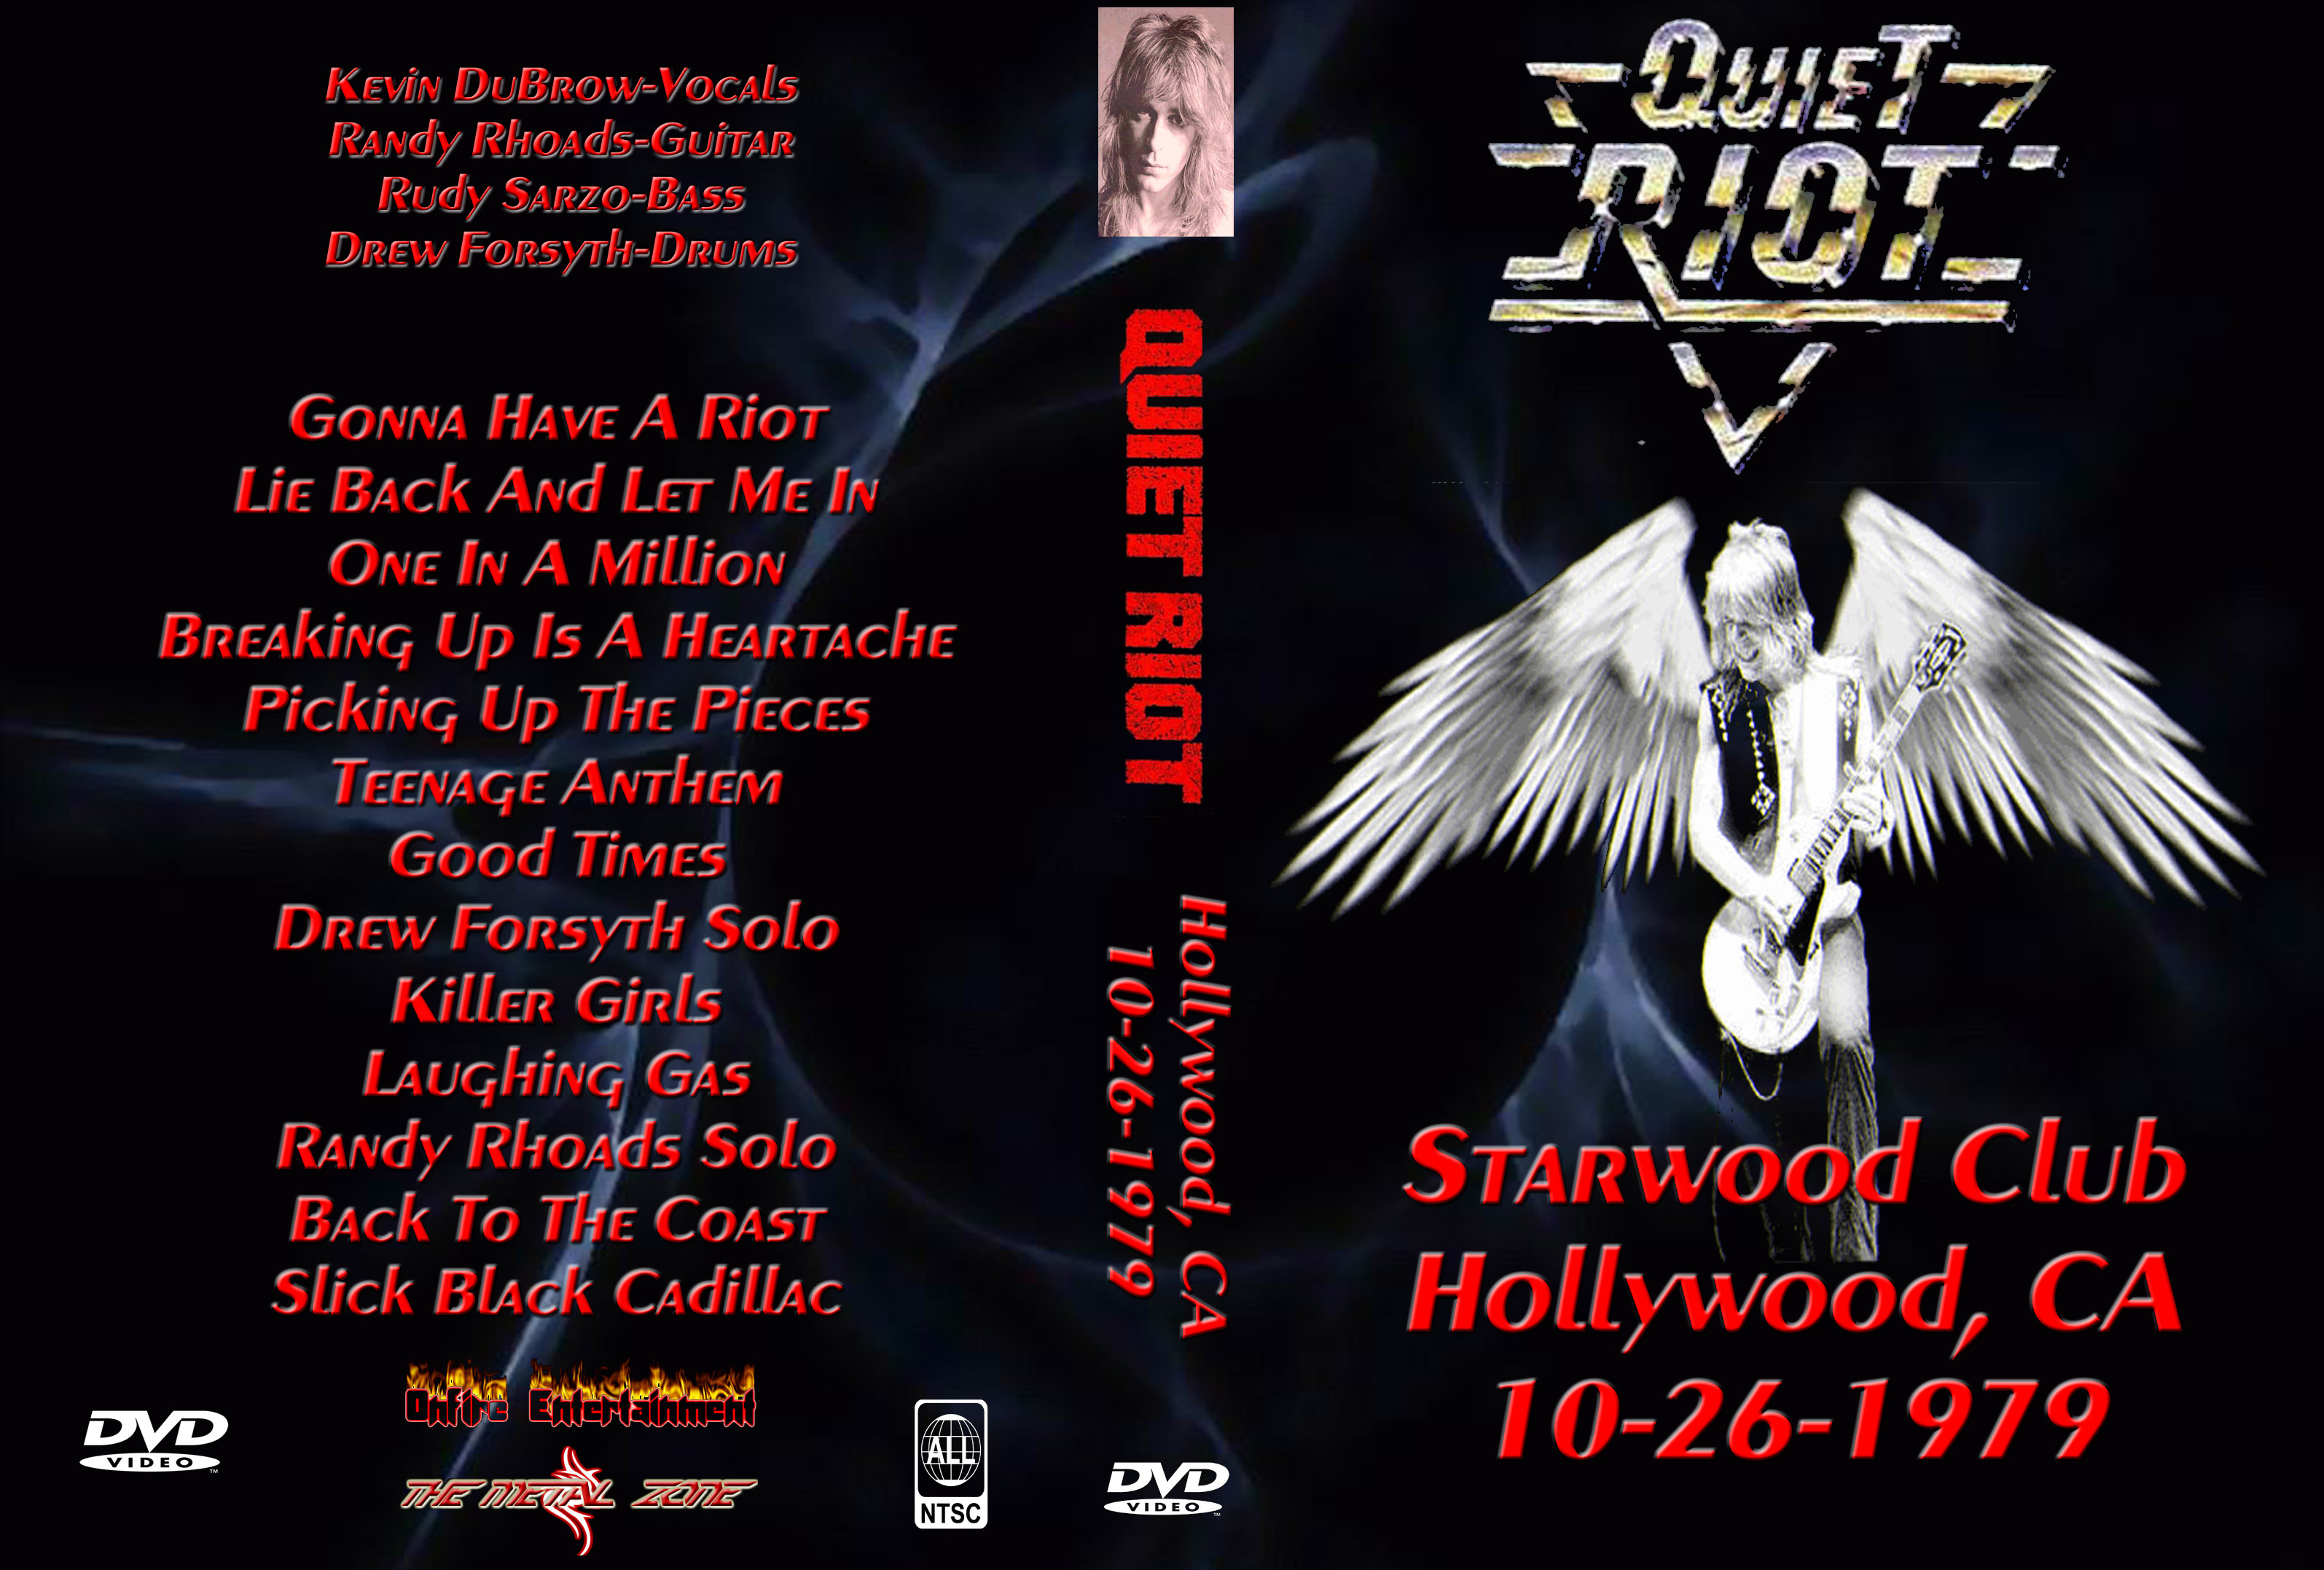 Quiet_riot_hollywood_10-26-79_original